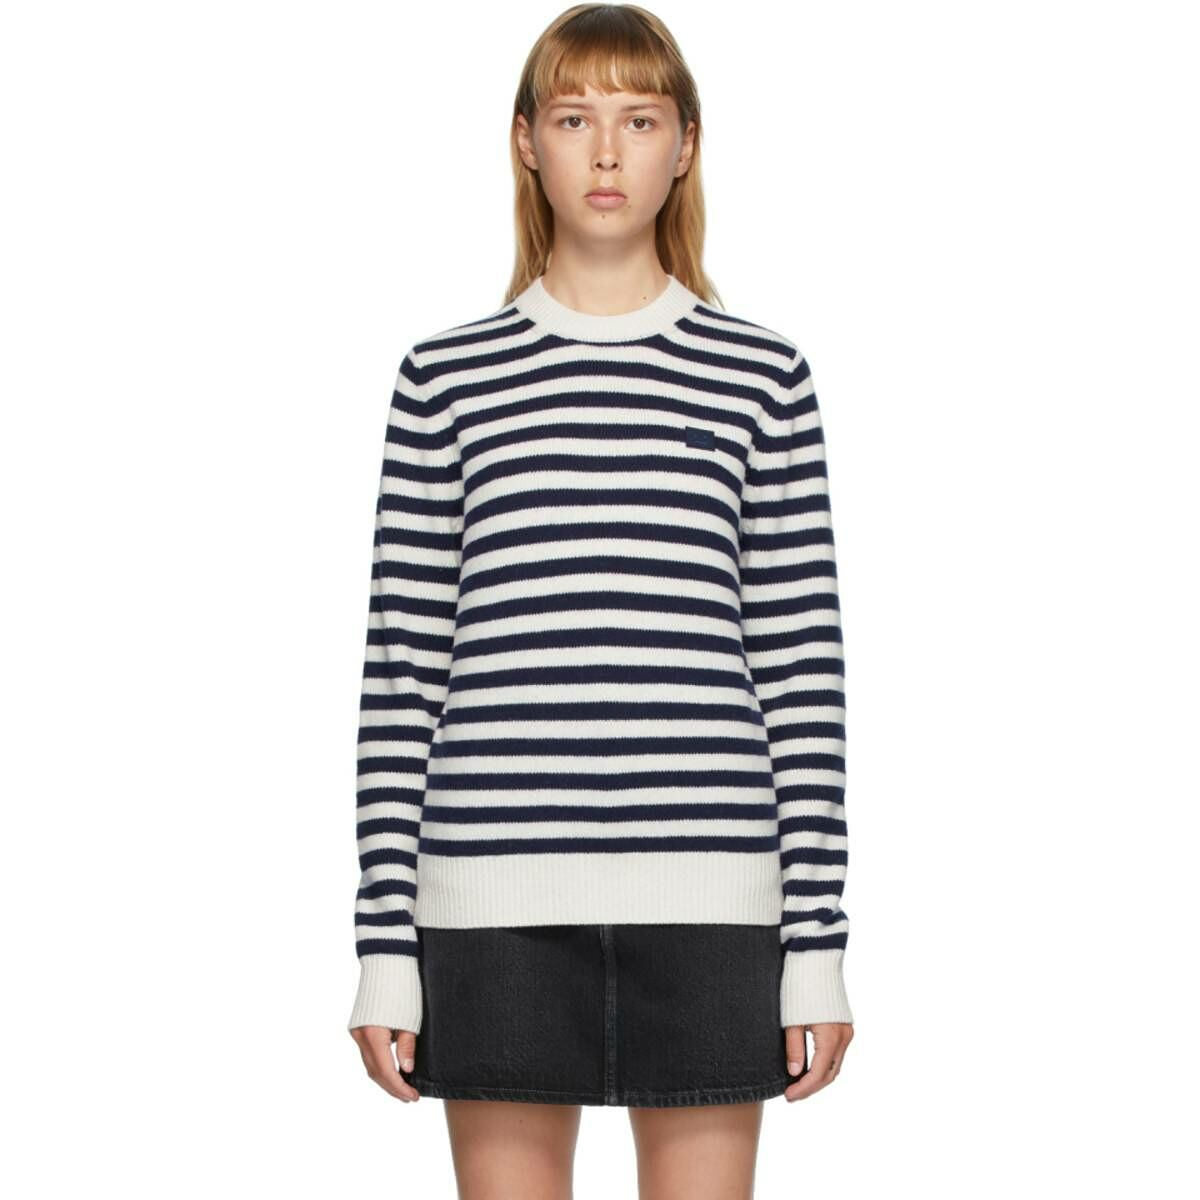 Acne Studios Navy and White Breton Stripe Sweater Ssense USA WOMEN Women FASHION Womens KNITWEAR